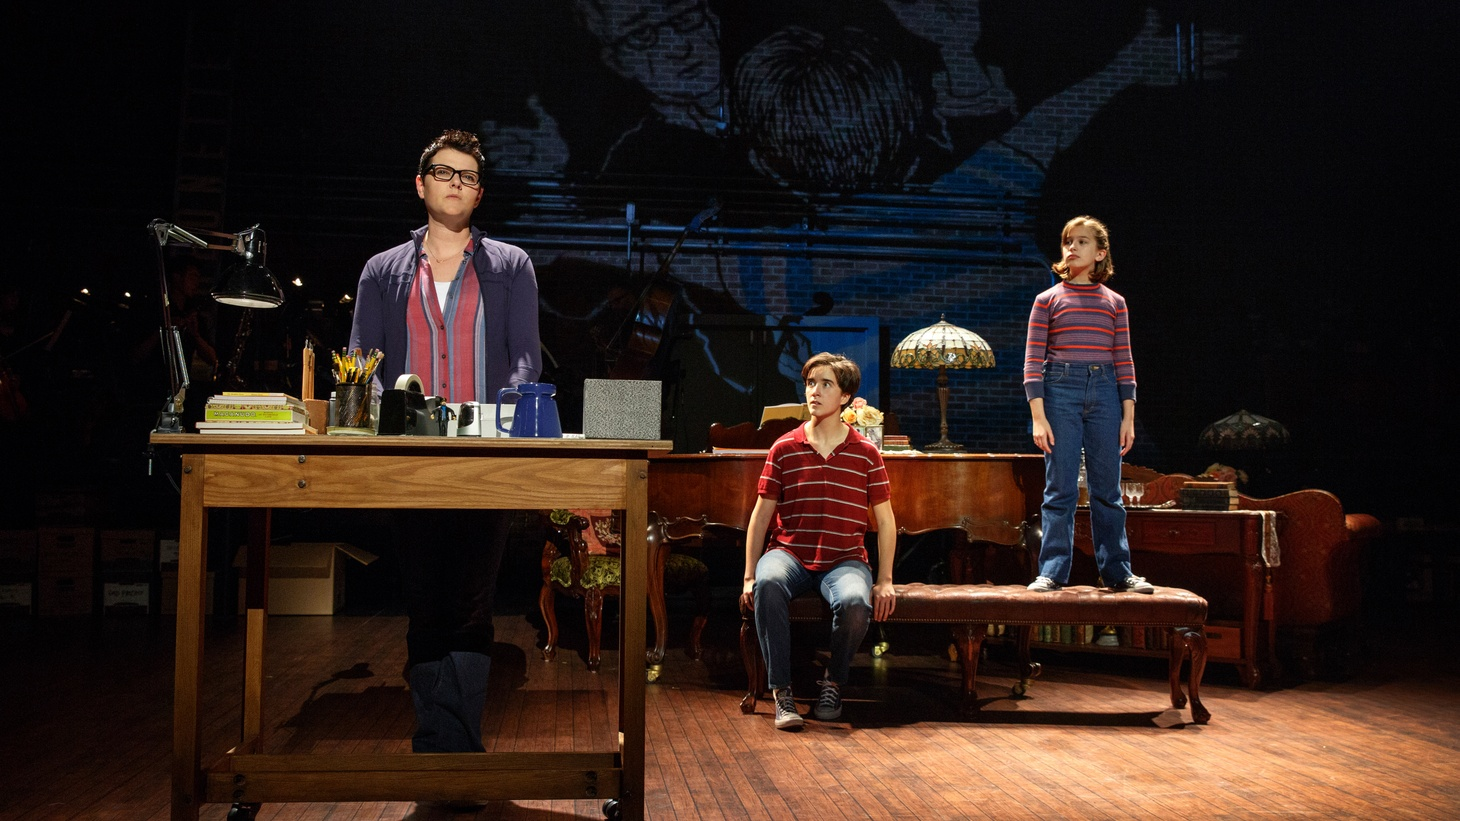 If you're the kind of person who likes a traditional musical -- you know, boy meets girl, hummable tunes, linear narrative structure to a big redemptive finish -- if that's your thing, Fun Home at the Ahmanson is probably just going to frustrate you. If, on the other hand, you're a little more adventurous, it's fantastic.